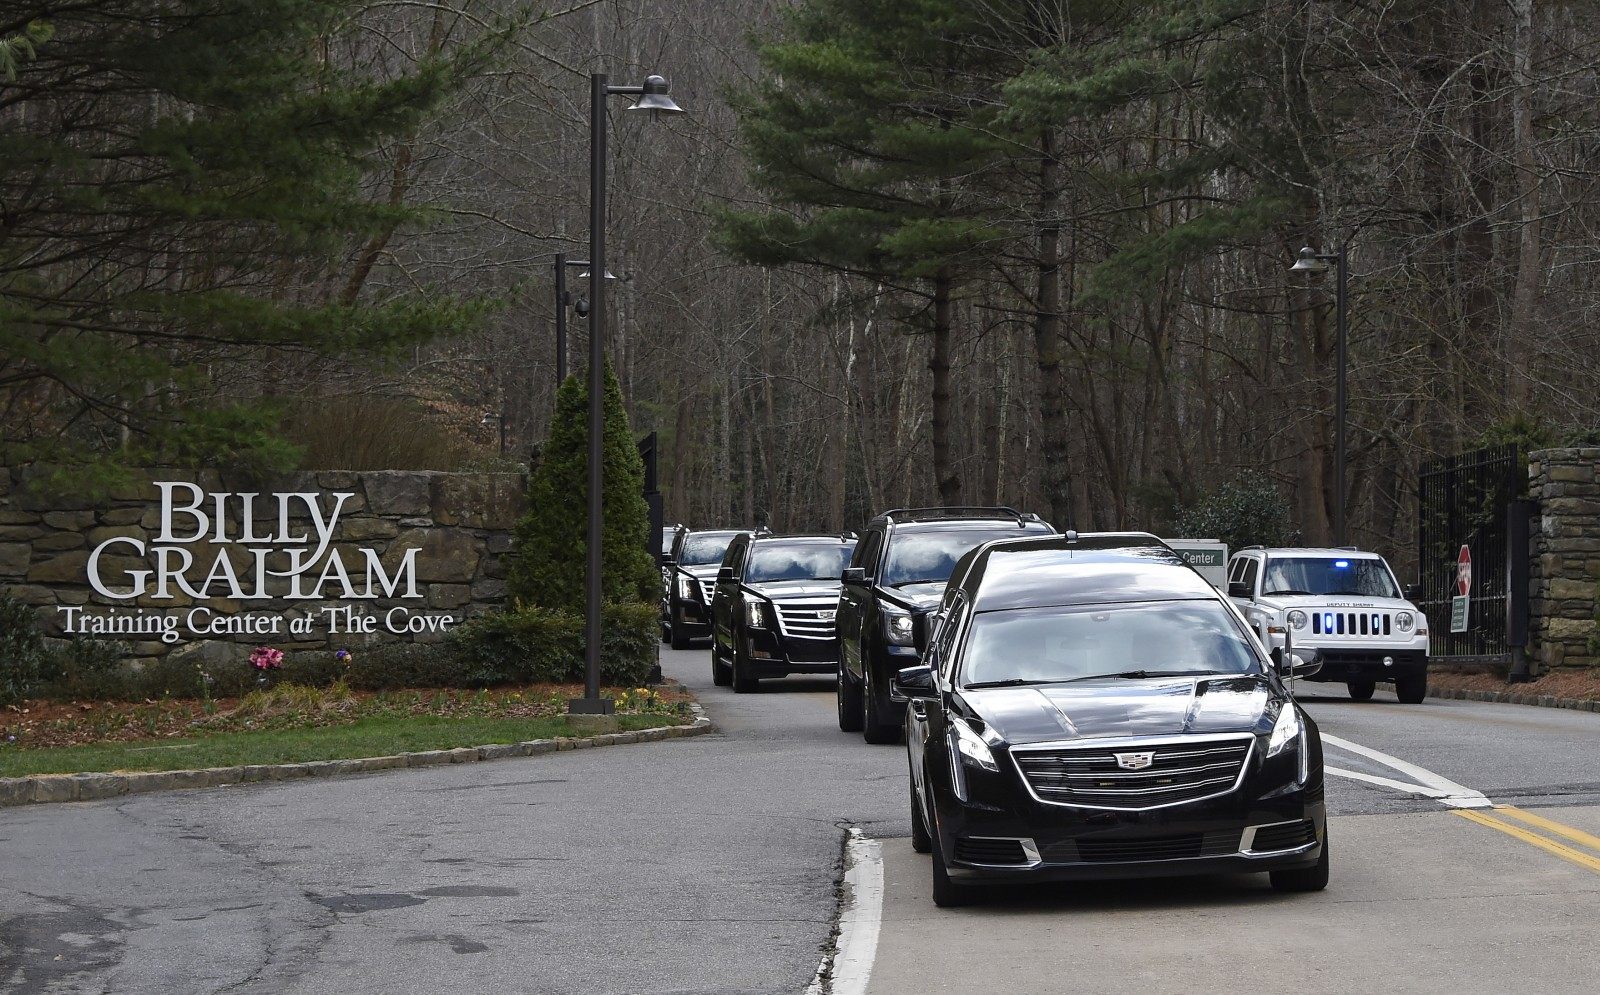 The hearse carrying the body of Billy Graham leaves the Billy Graham Training Center in Asheville, N.C., Saturday, Feb. 24, 2018. Graham's body was brought to his hometown of Charlotte on Saturday, Feb. 24, as part of a procession expected to draw crowds of well-wishers. (Kathy Kmonicek/pool photo)